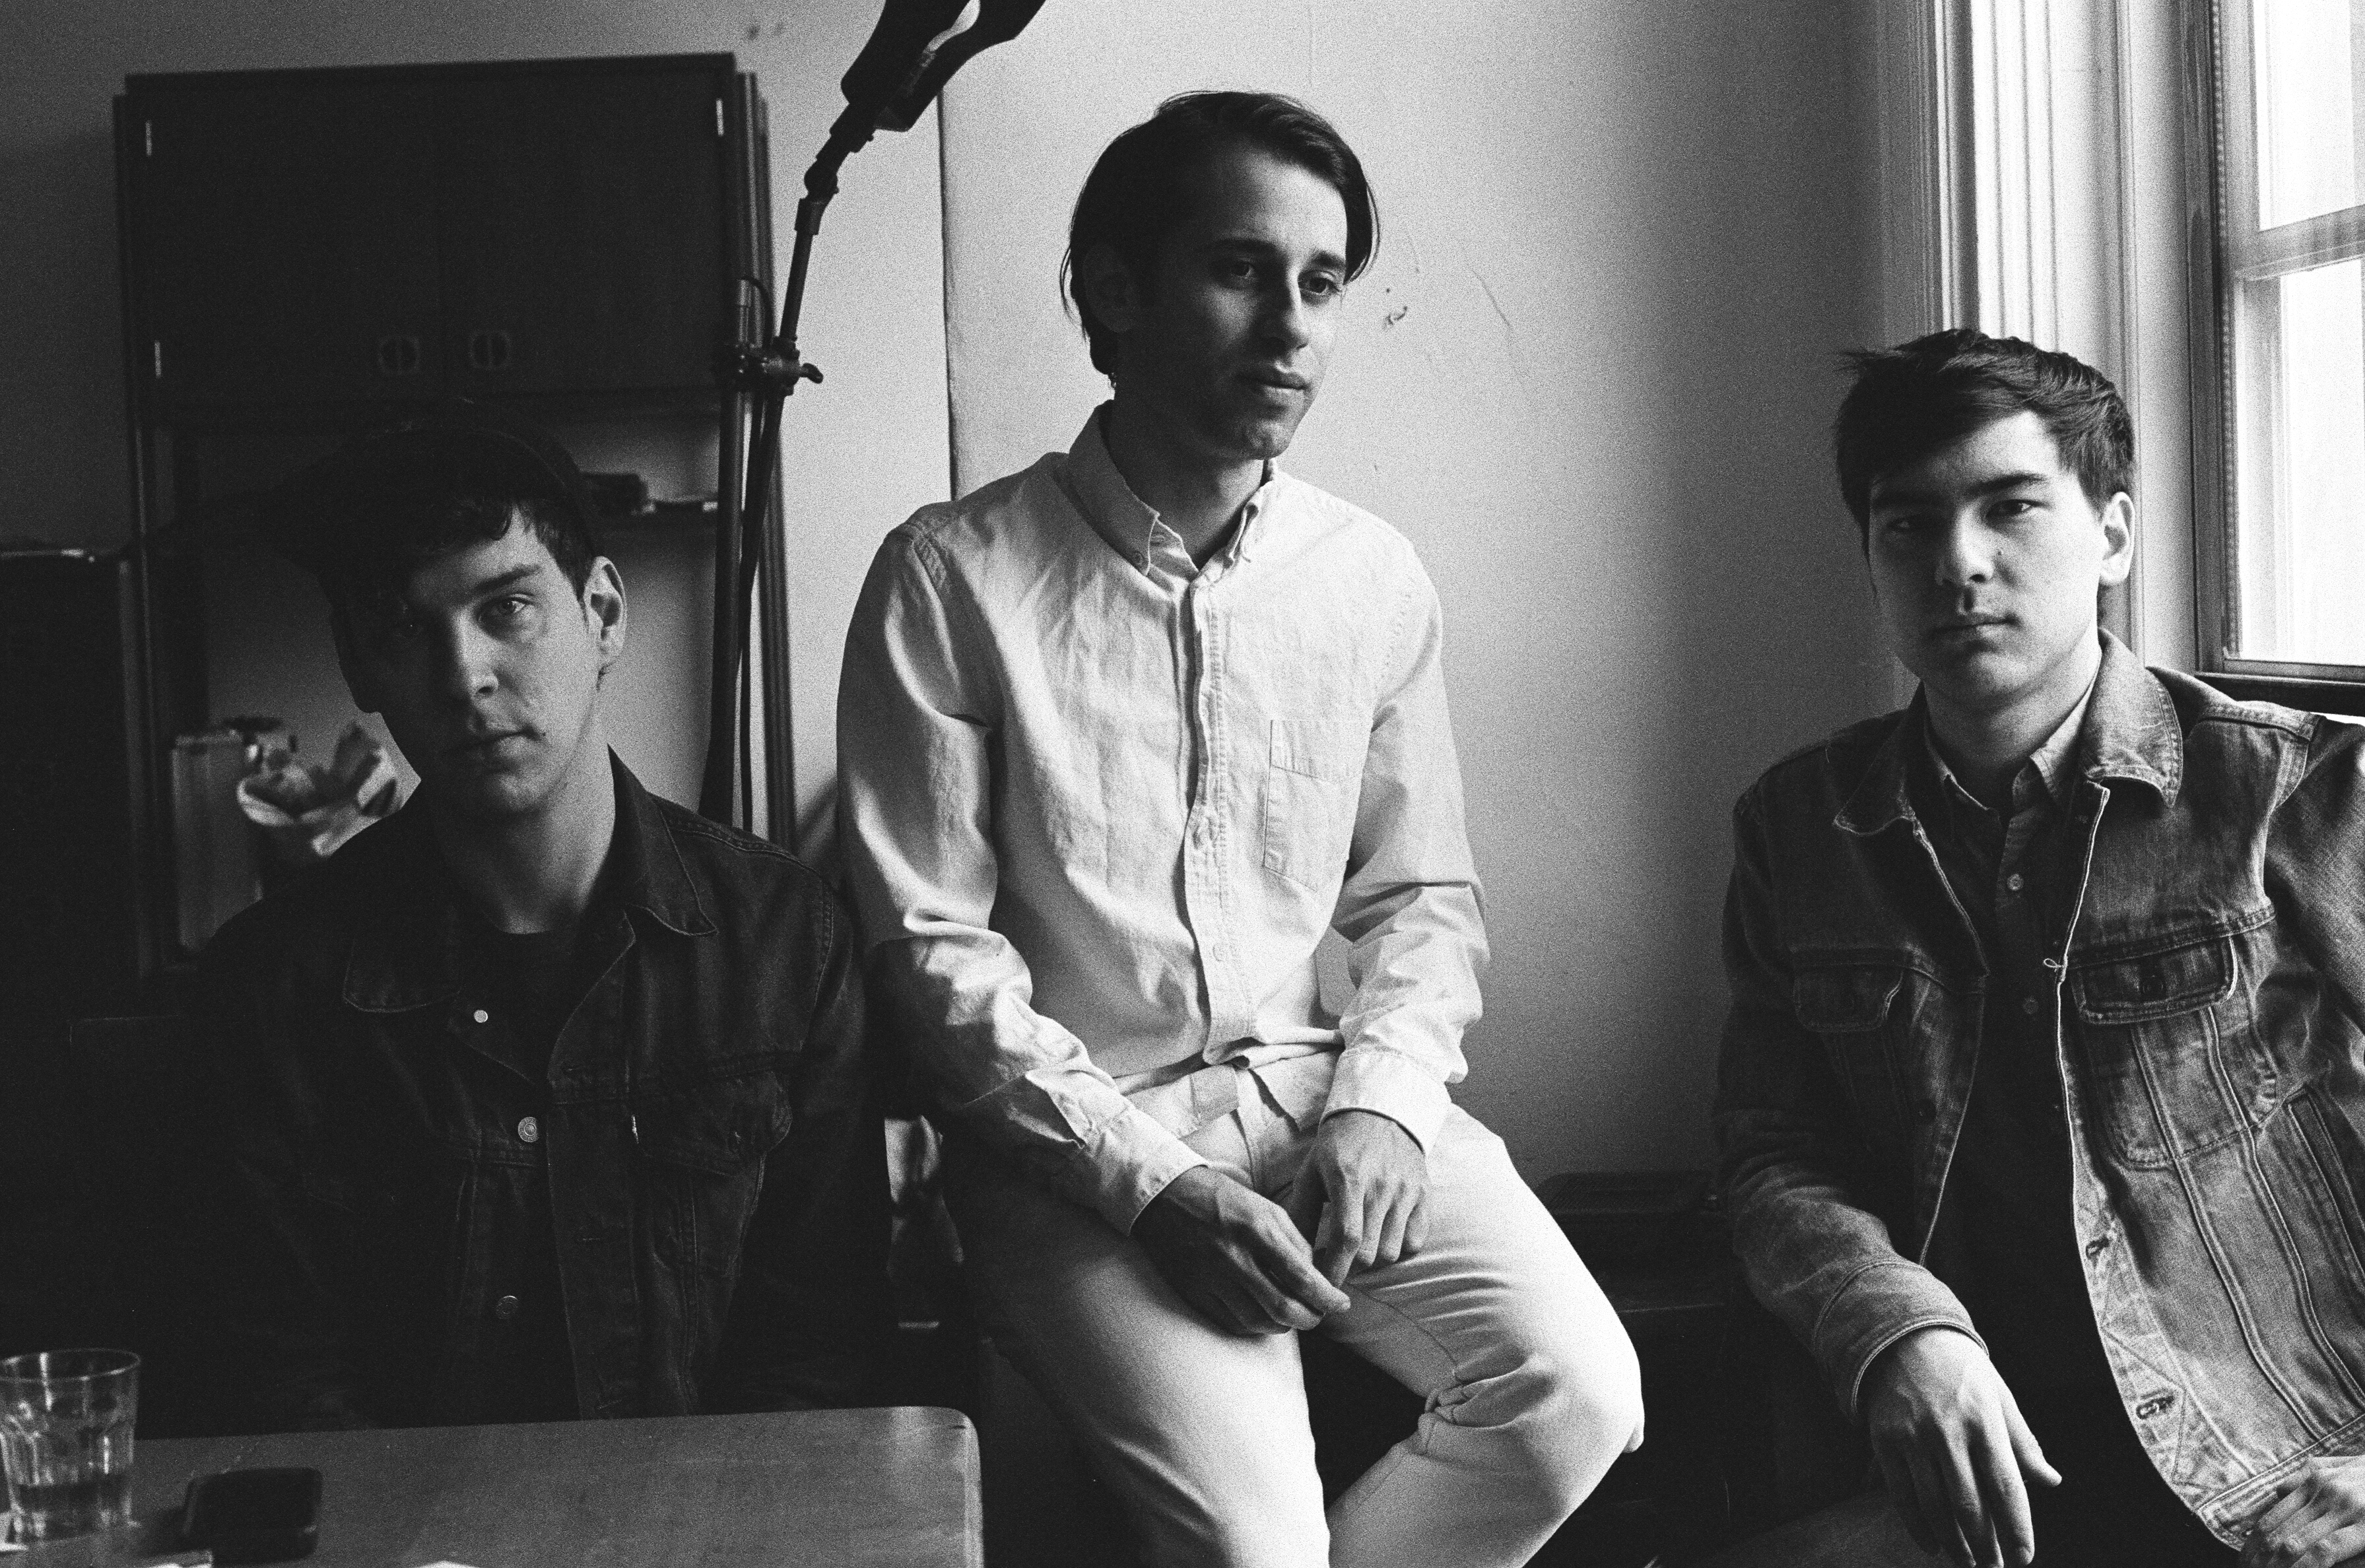 Captured Tracks To Release EZTV's Debut Album 'Calling Out' Out July 10th.